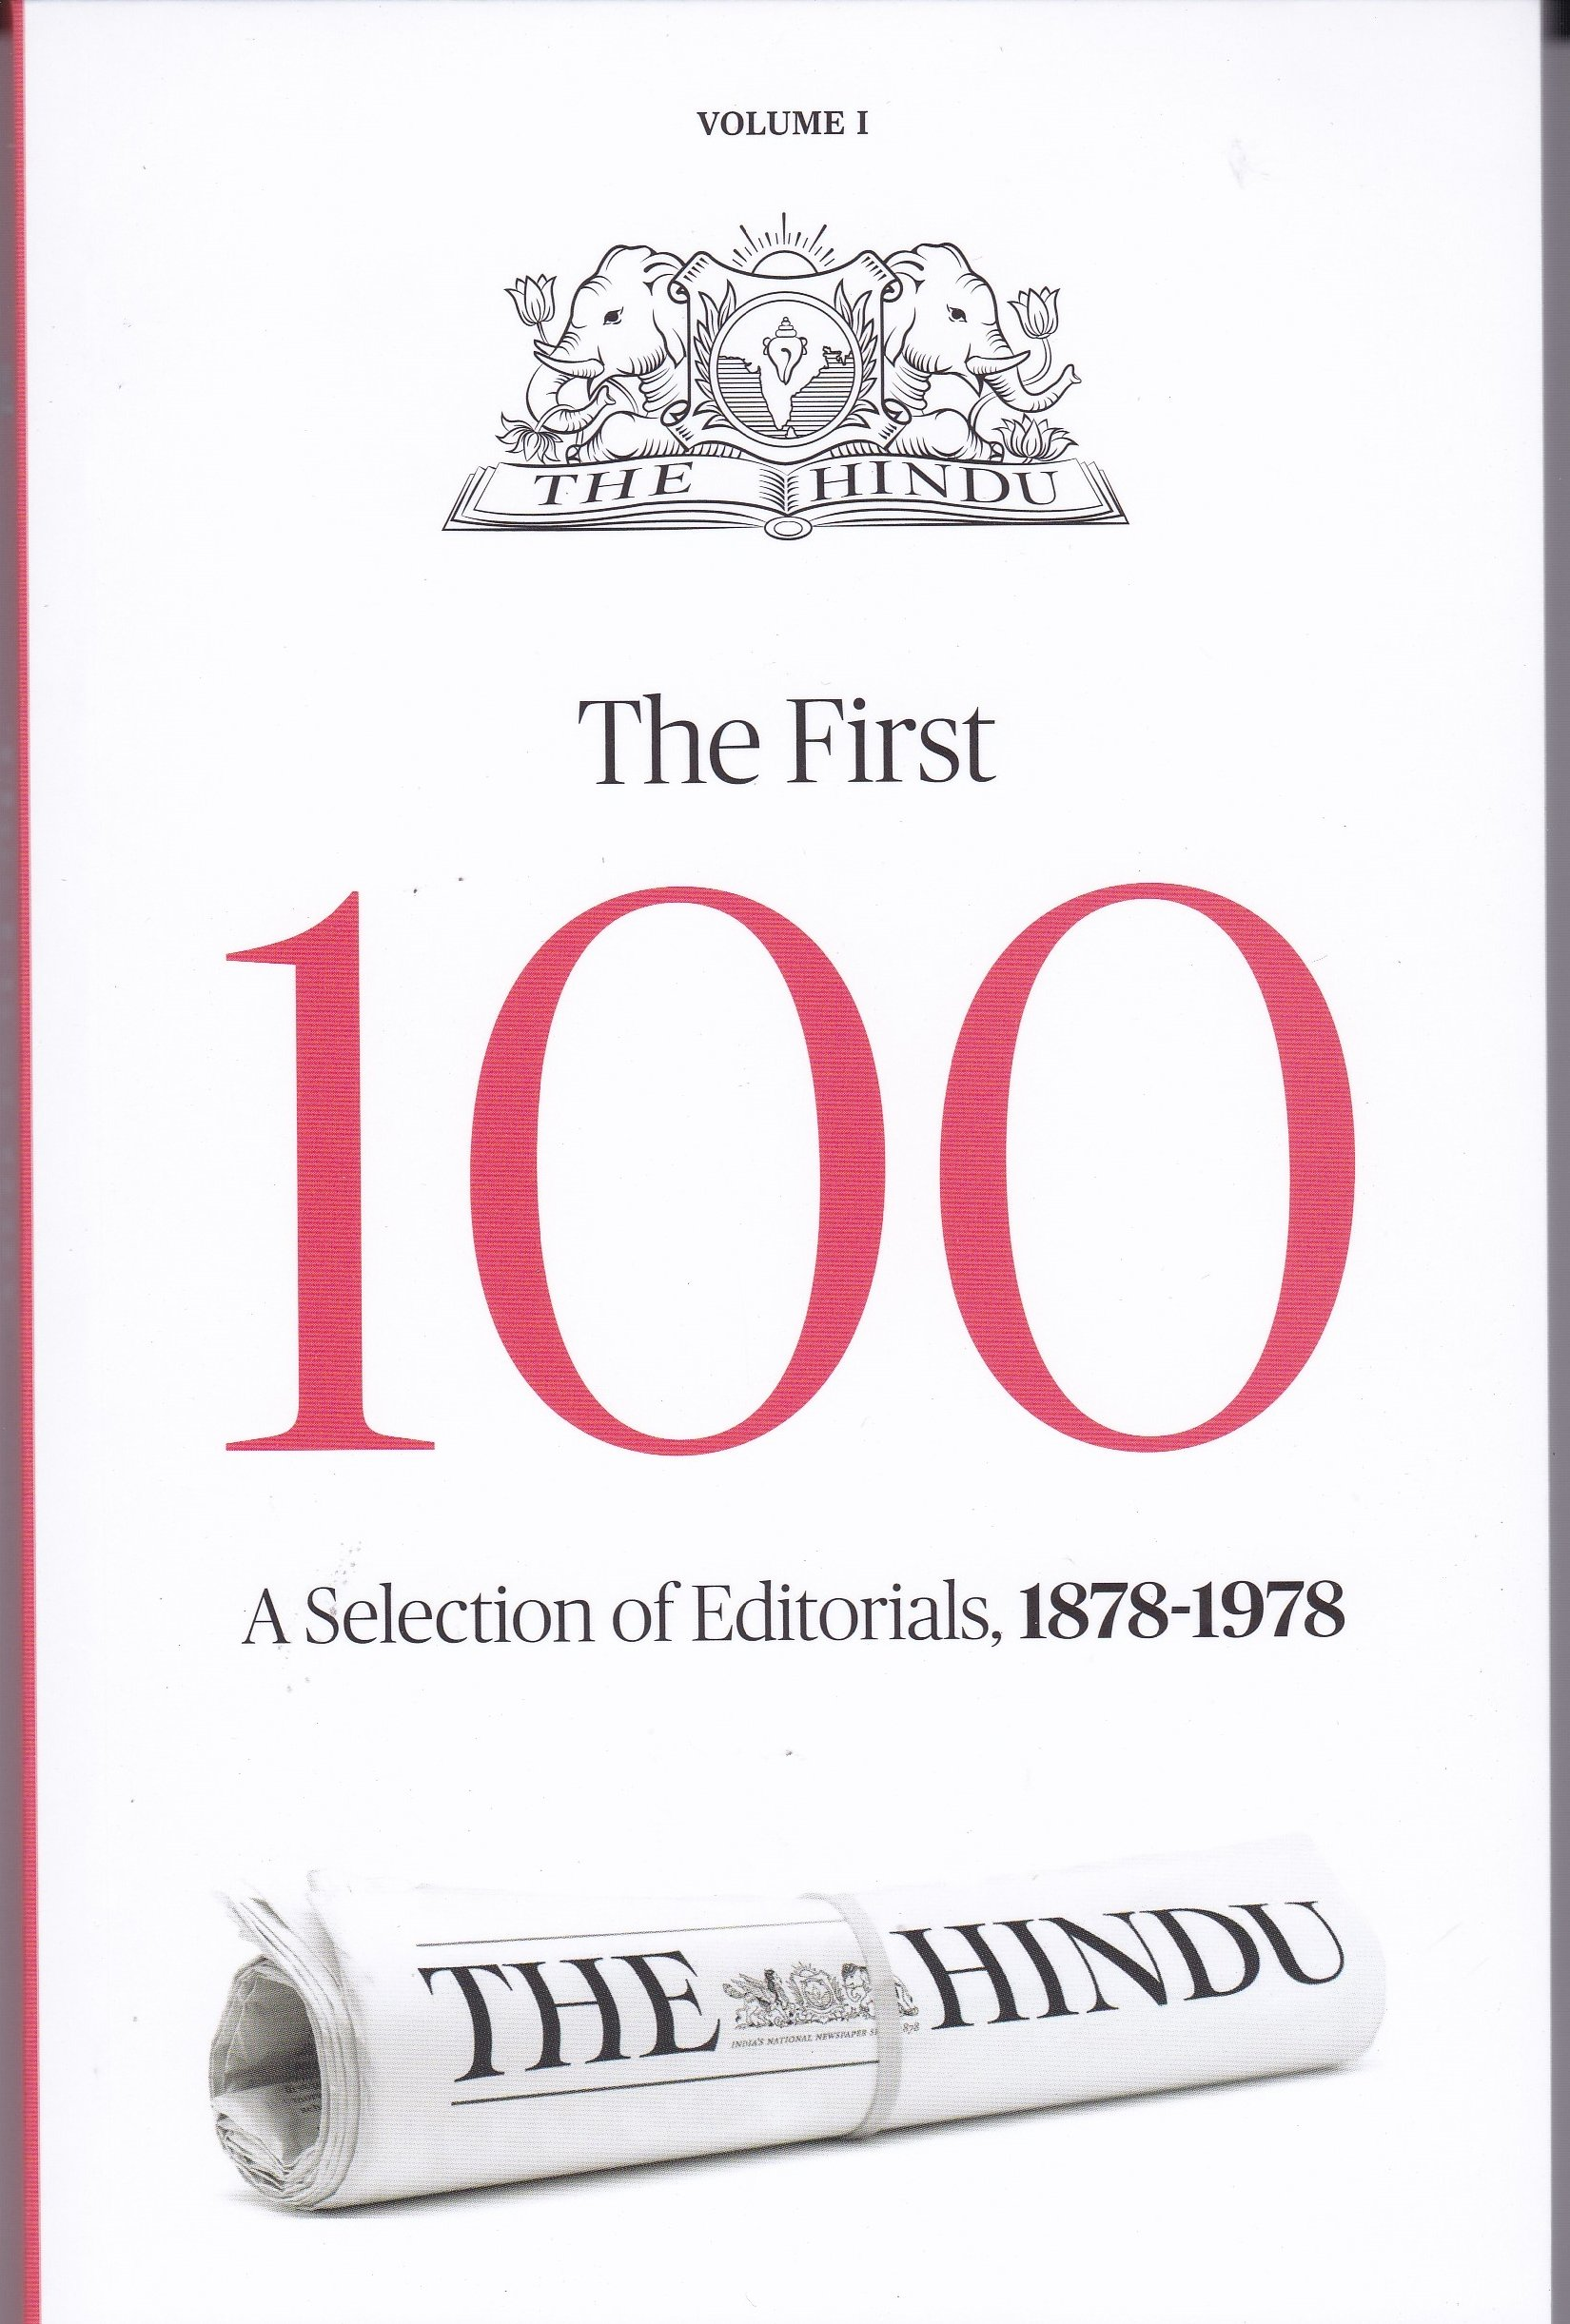 8845386fb85 Amazon.in: Buy The First 100 ( A Selection of Editorials From THE HINDU  1878 - 1978 ) Book Online at Low Prices in India | The First 100 ( A  Selection of ...